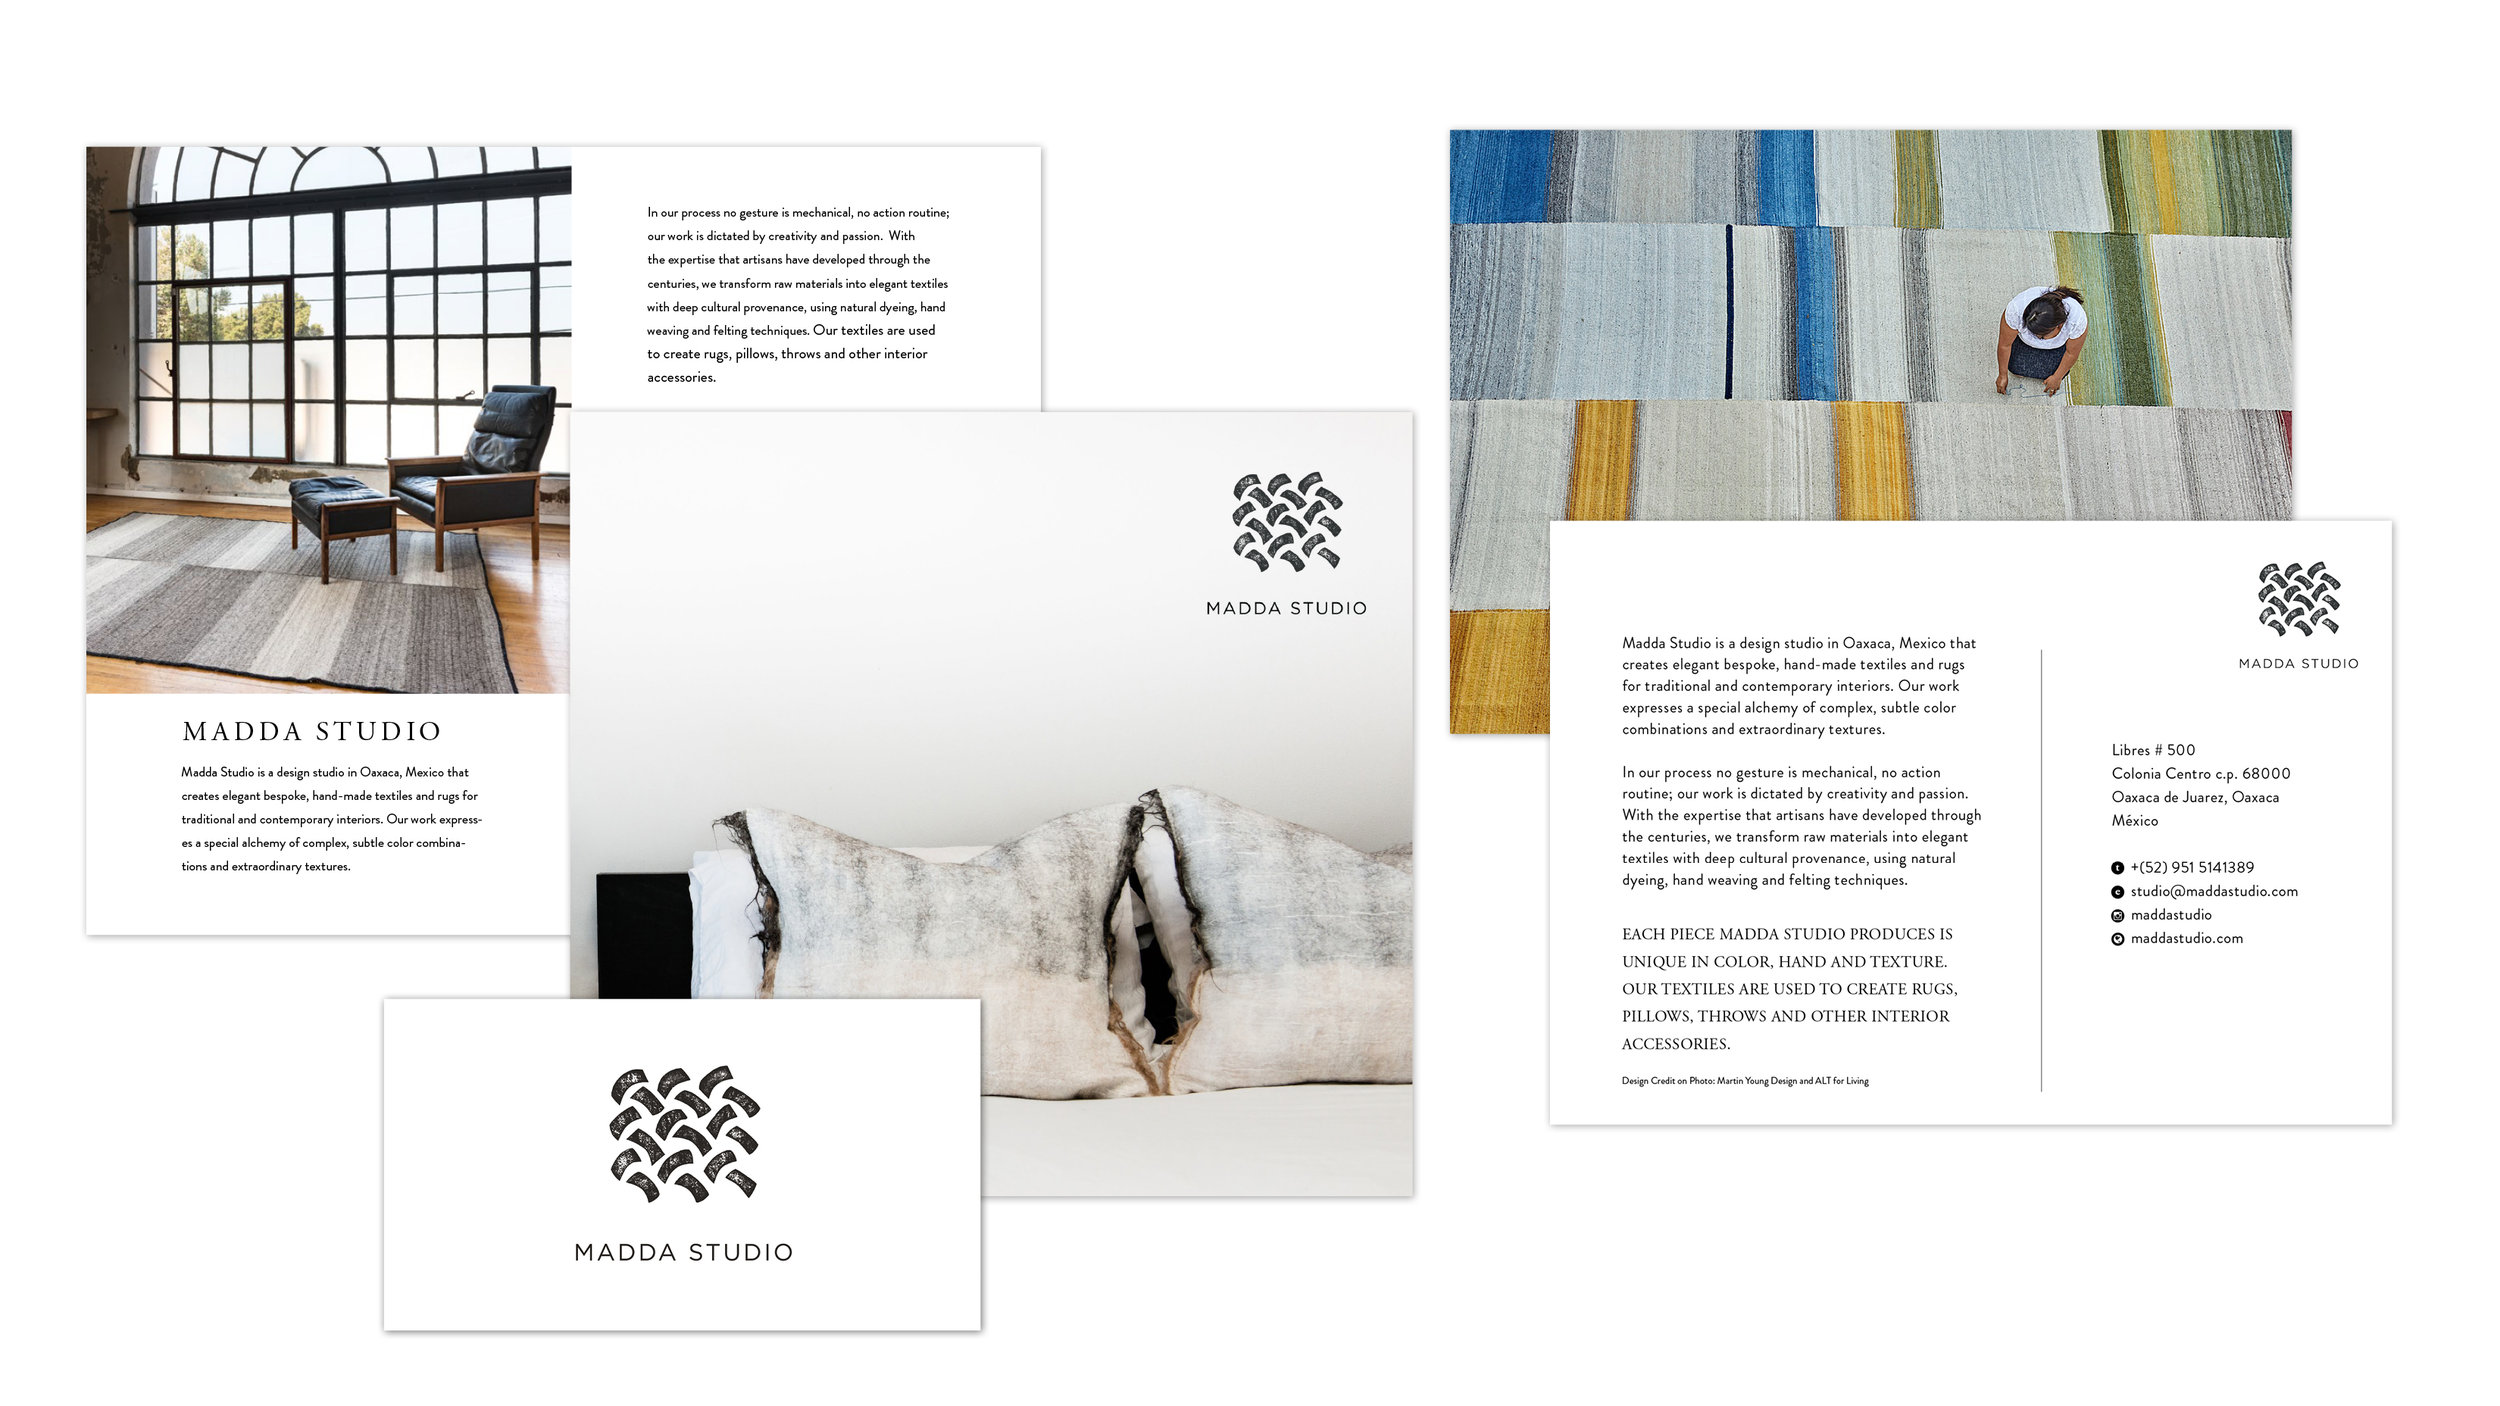 Graphic design projects for Madda Studio consists of a Trifold, Business Cards, Postcards, and a squarespace website.